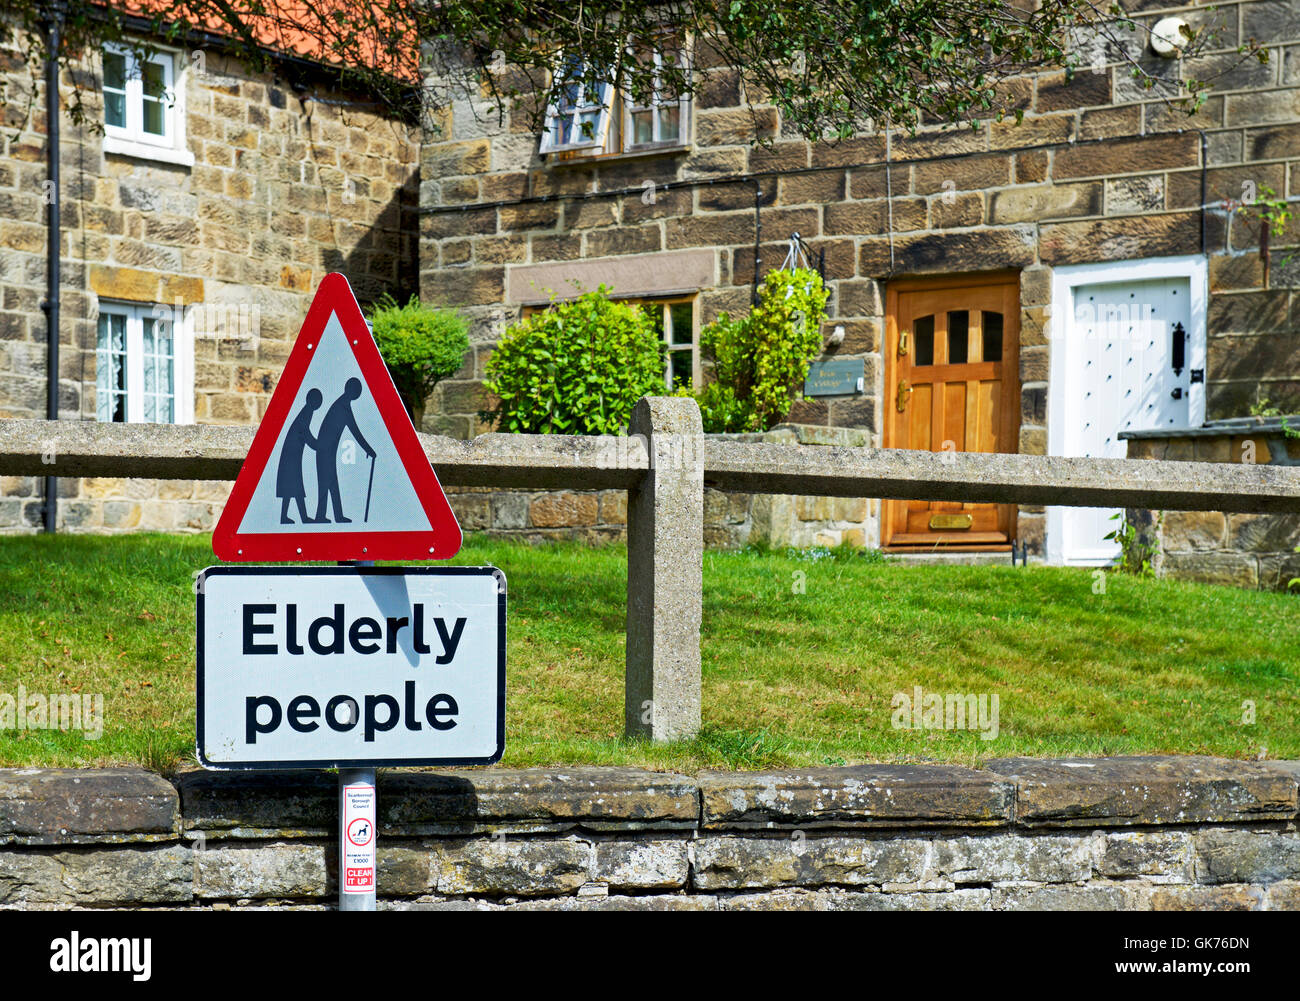 Sign for old people crossing the road, Castleton, North Yorkshire, England UK - Stock Image